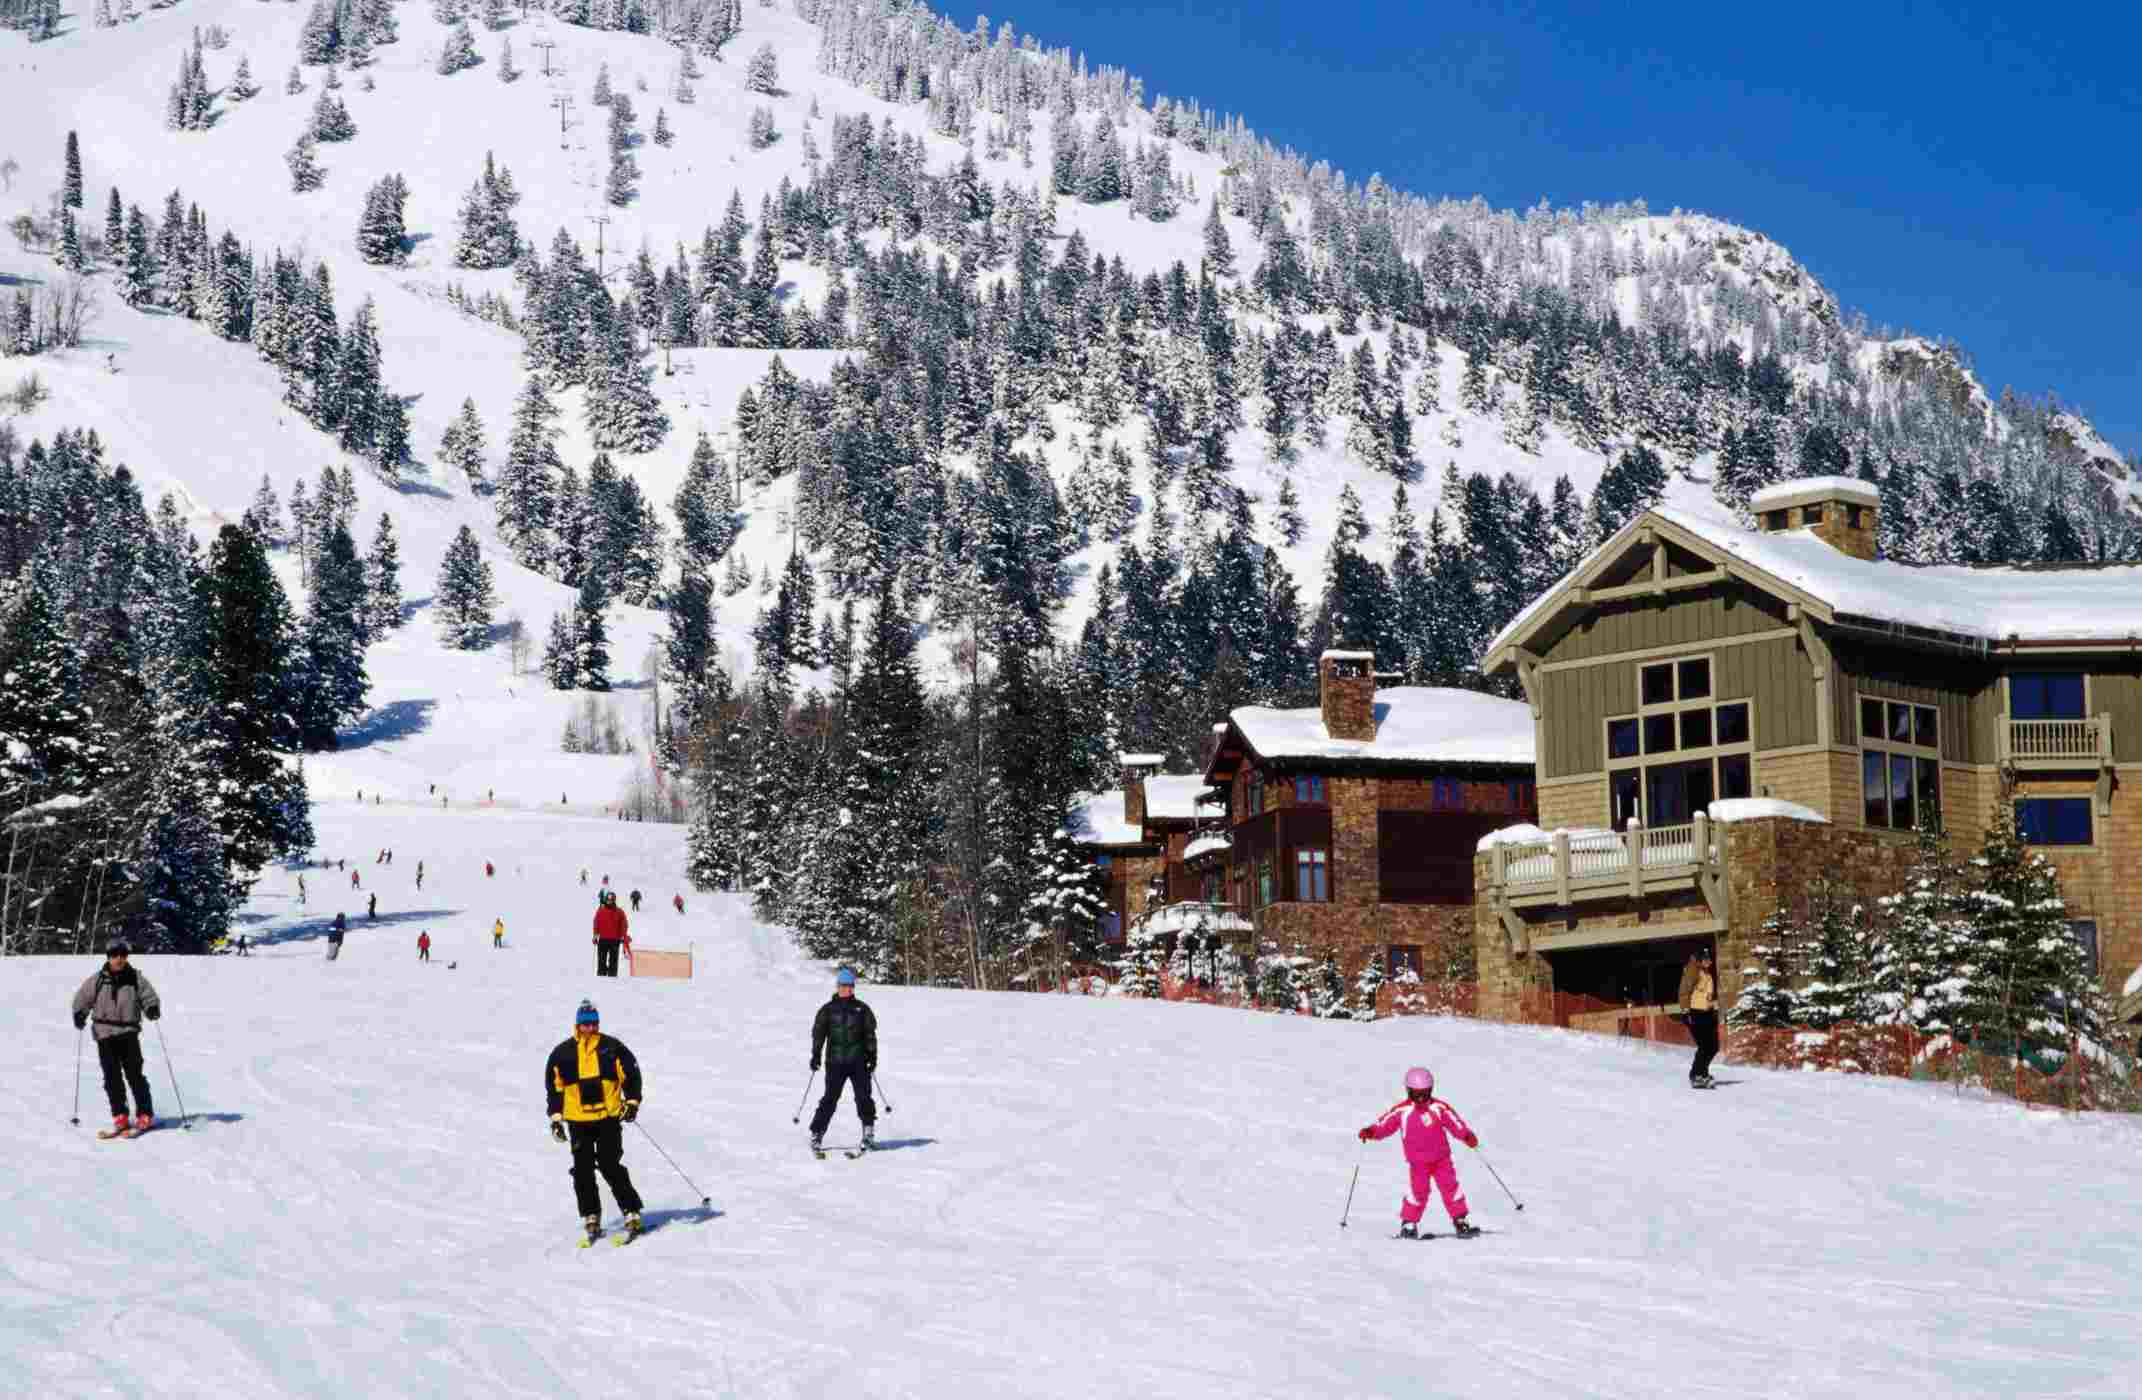 TOP SNOWSPORT RESORTS IN US – SNOWBOARDING AND SKIING